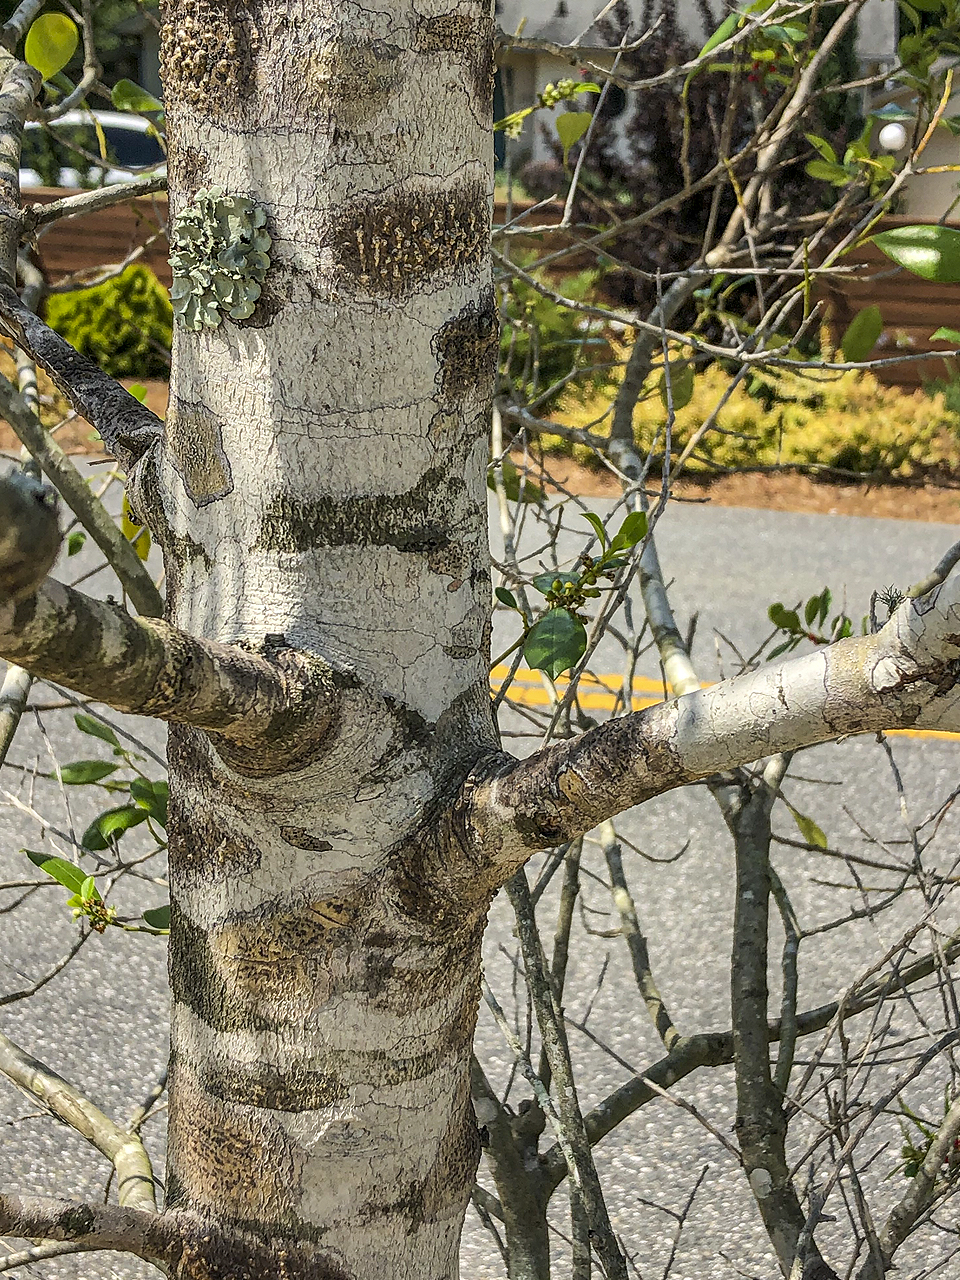 This branch angle is well formed, allowing  plenty of space for both the trunk and branch to expand.